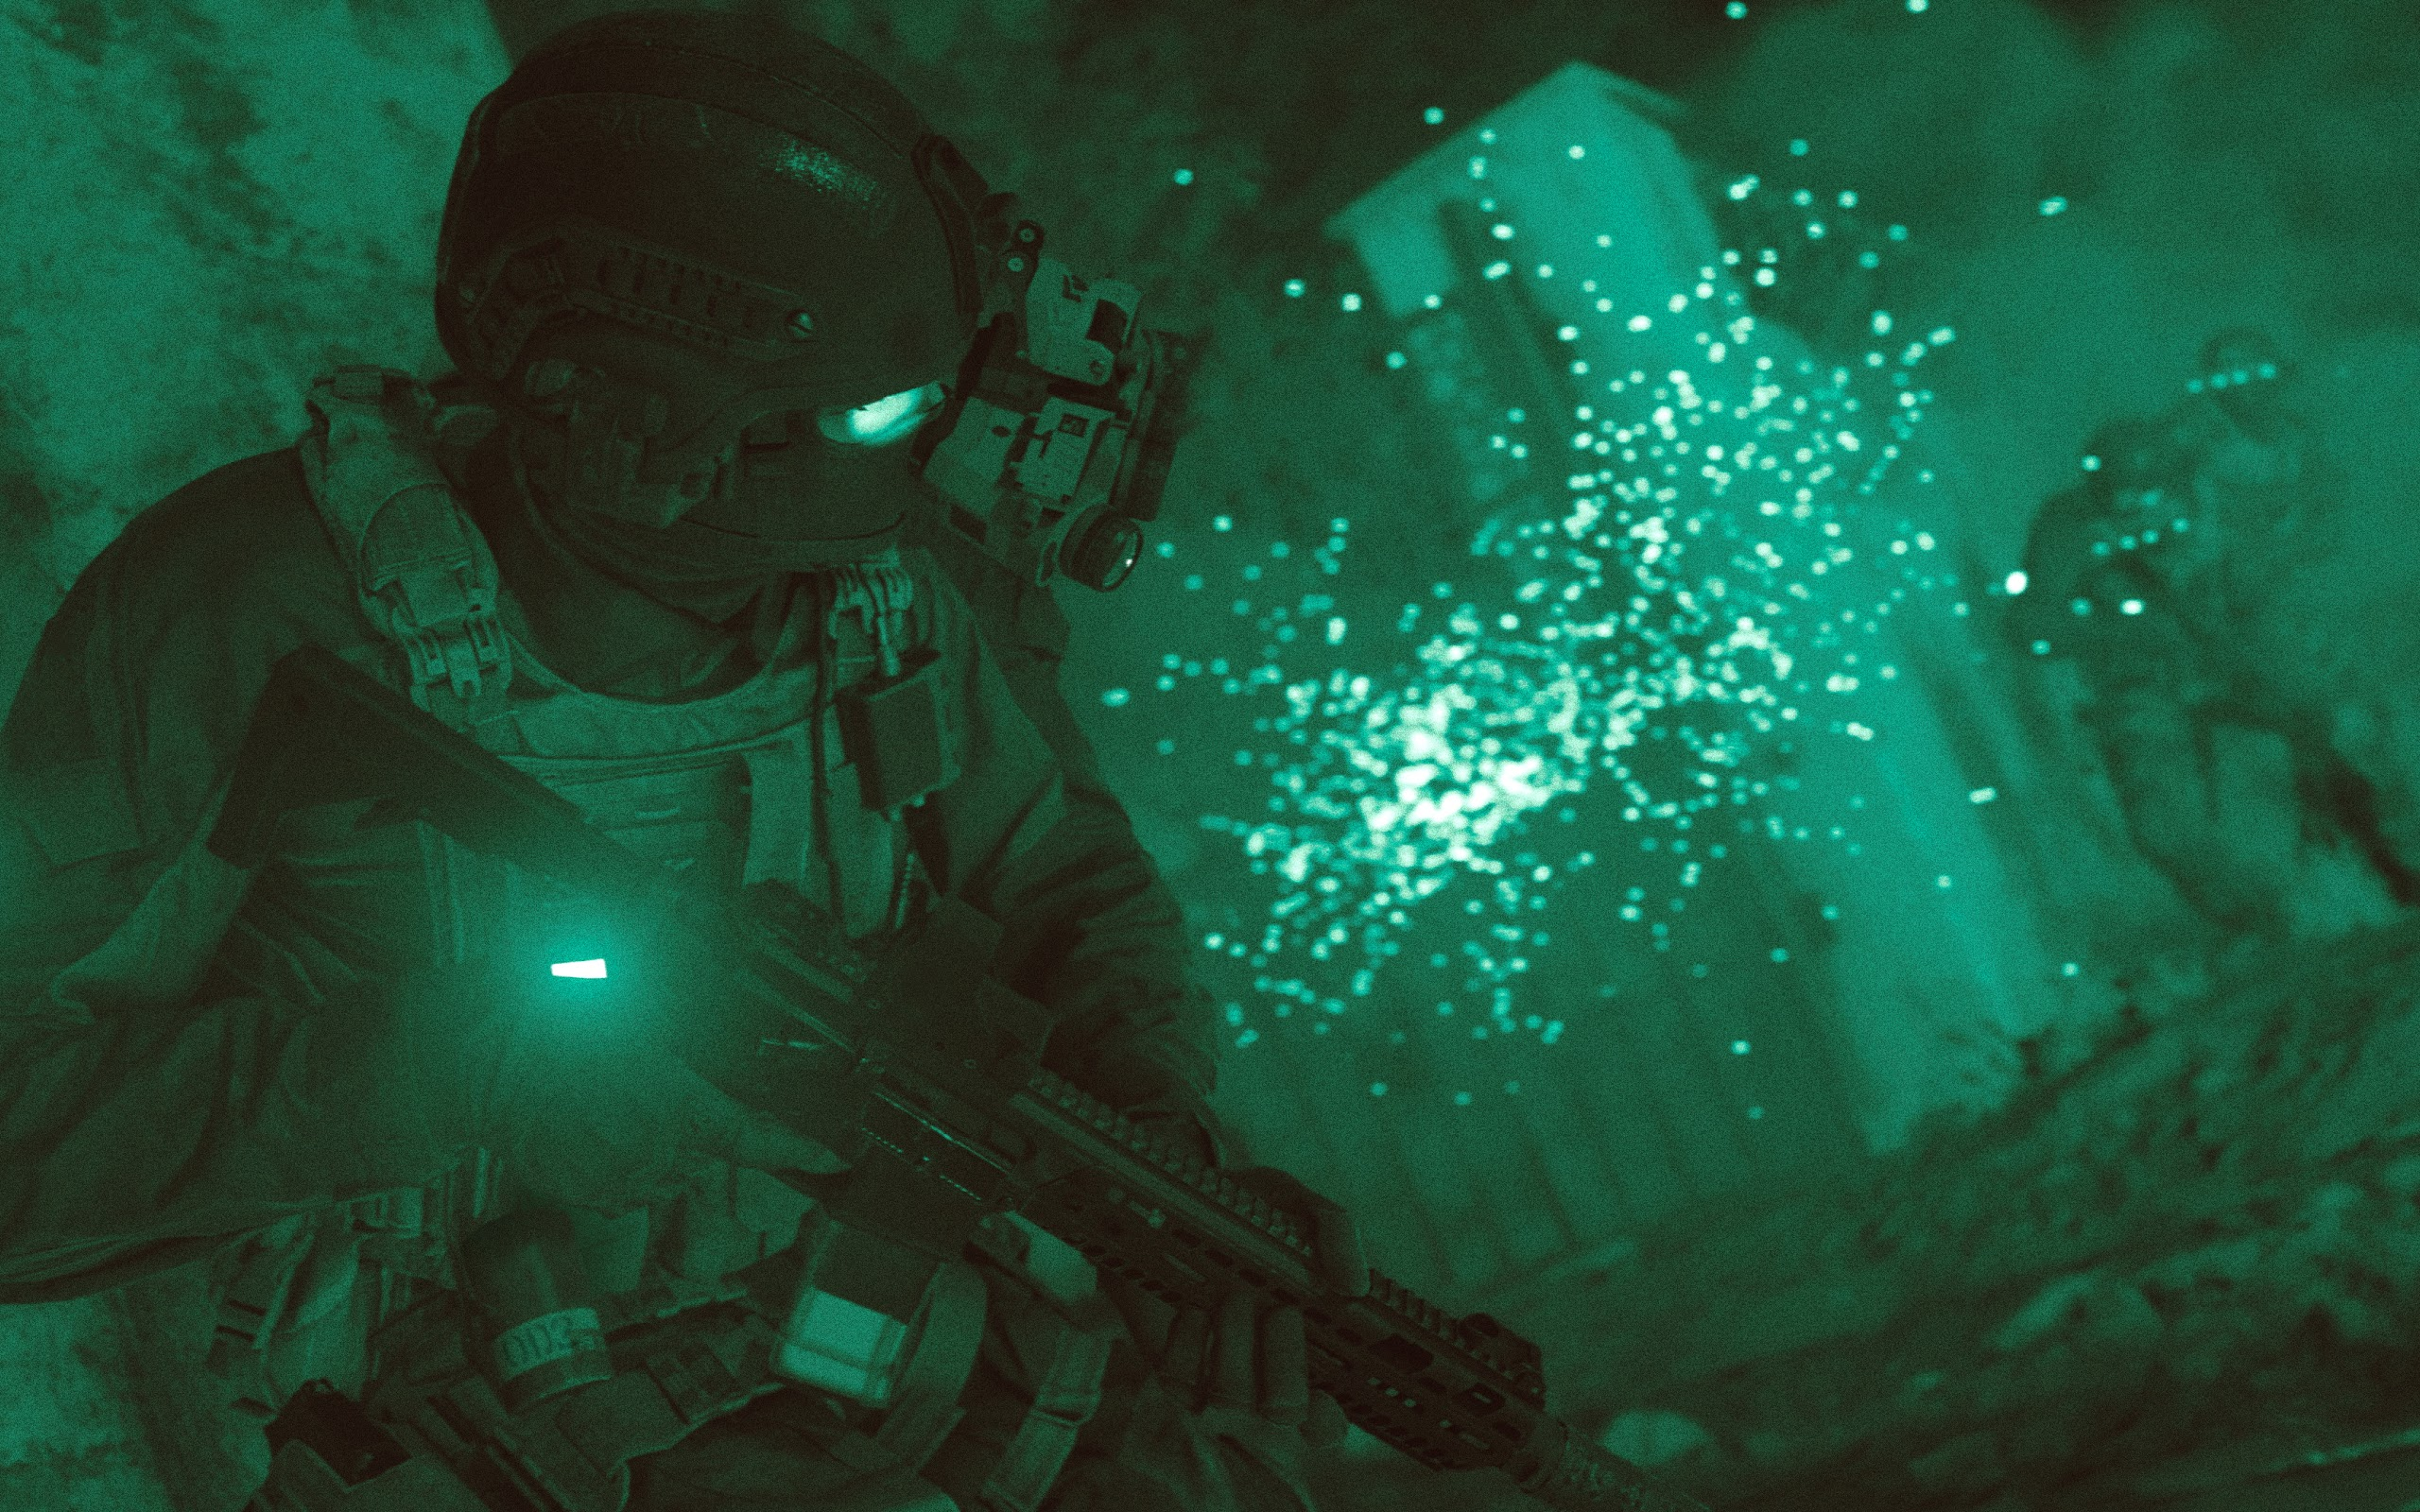 Call Of Duty Modern Warfare Soldiers Night Vision 4k Wallpaper 6